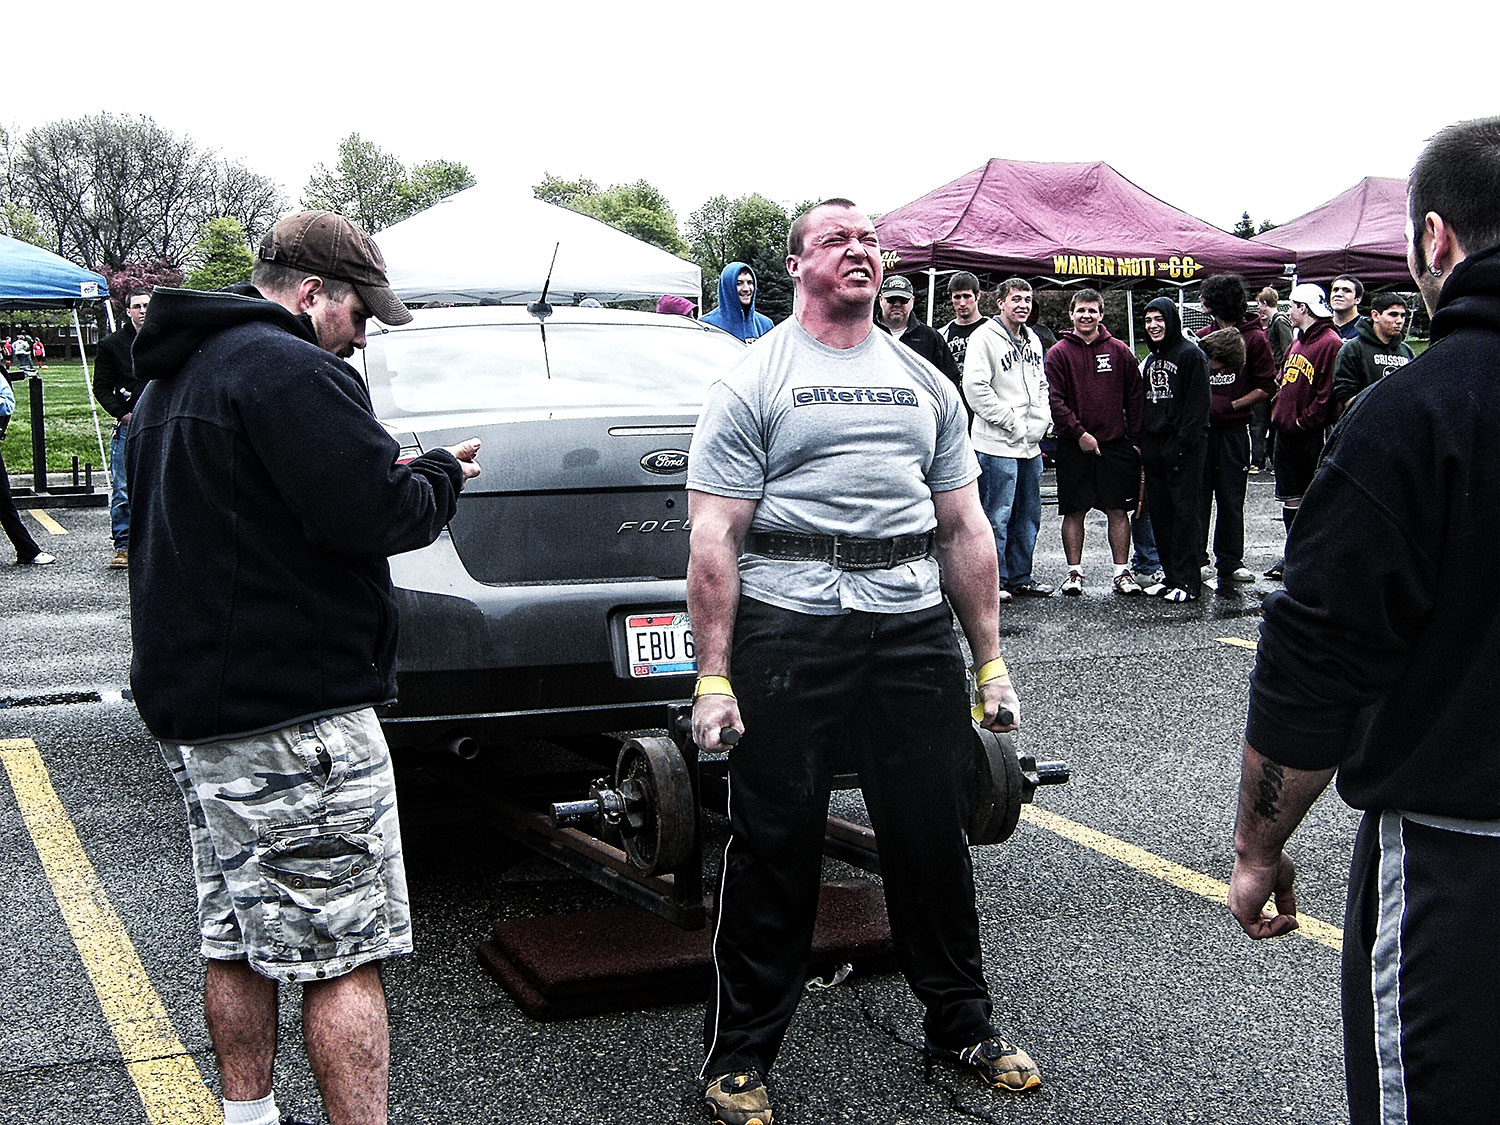 Ben Tipton, Head Coach, Deadlifting a Car at Strongman 2010